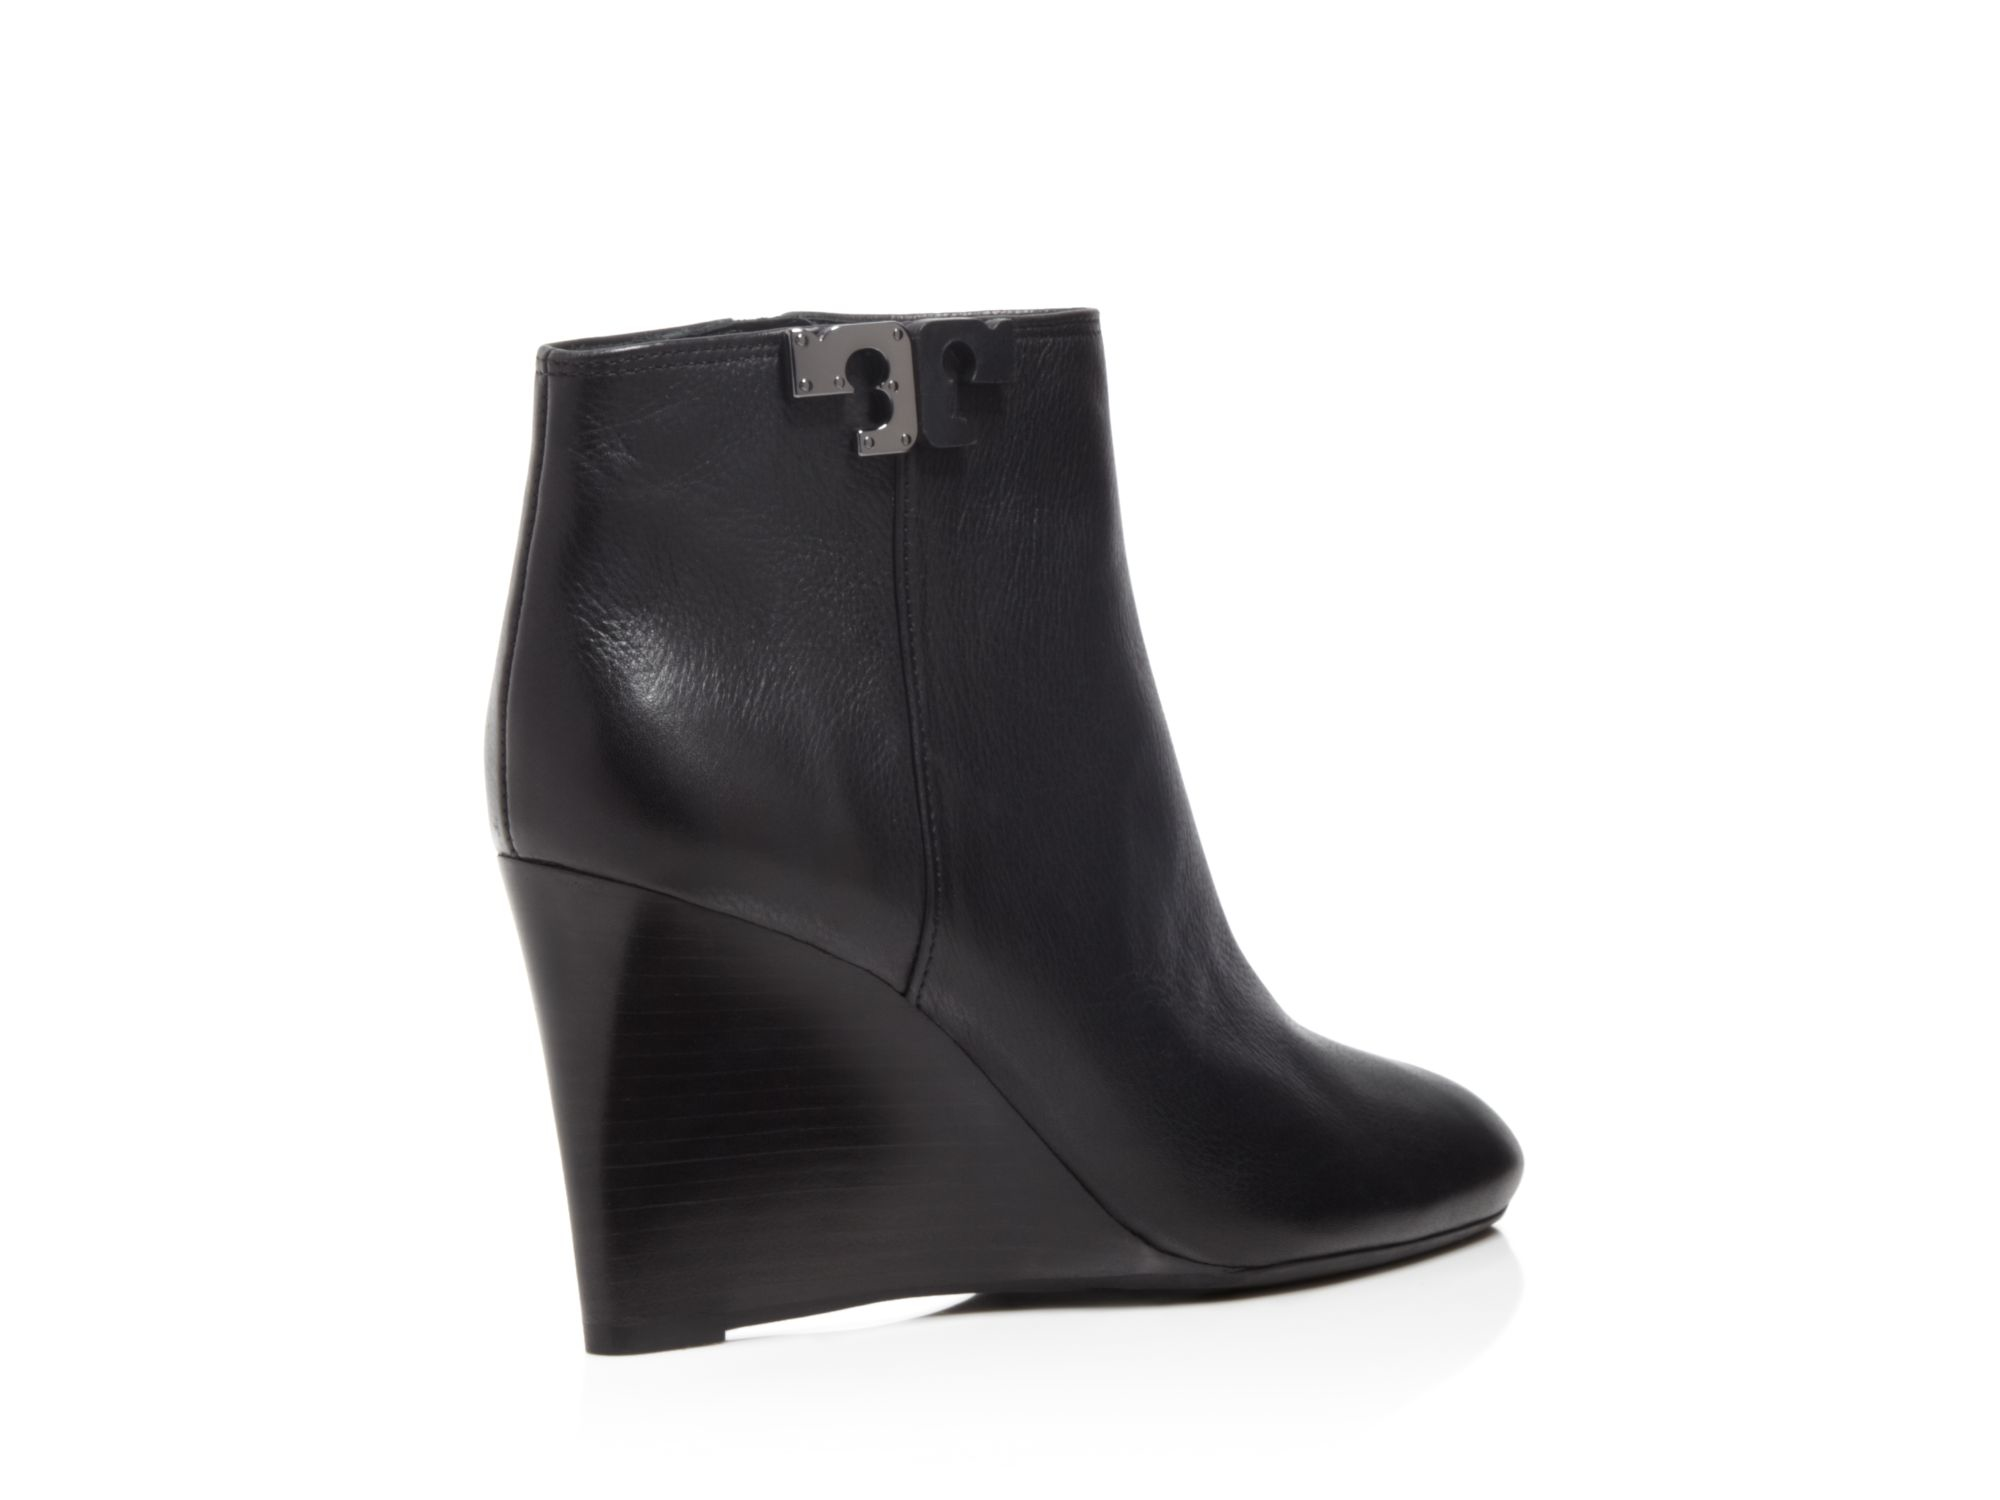 3875f5b10bae28 Lyst - Tory Burch Lowell Wedge Booties in Black